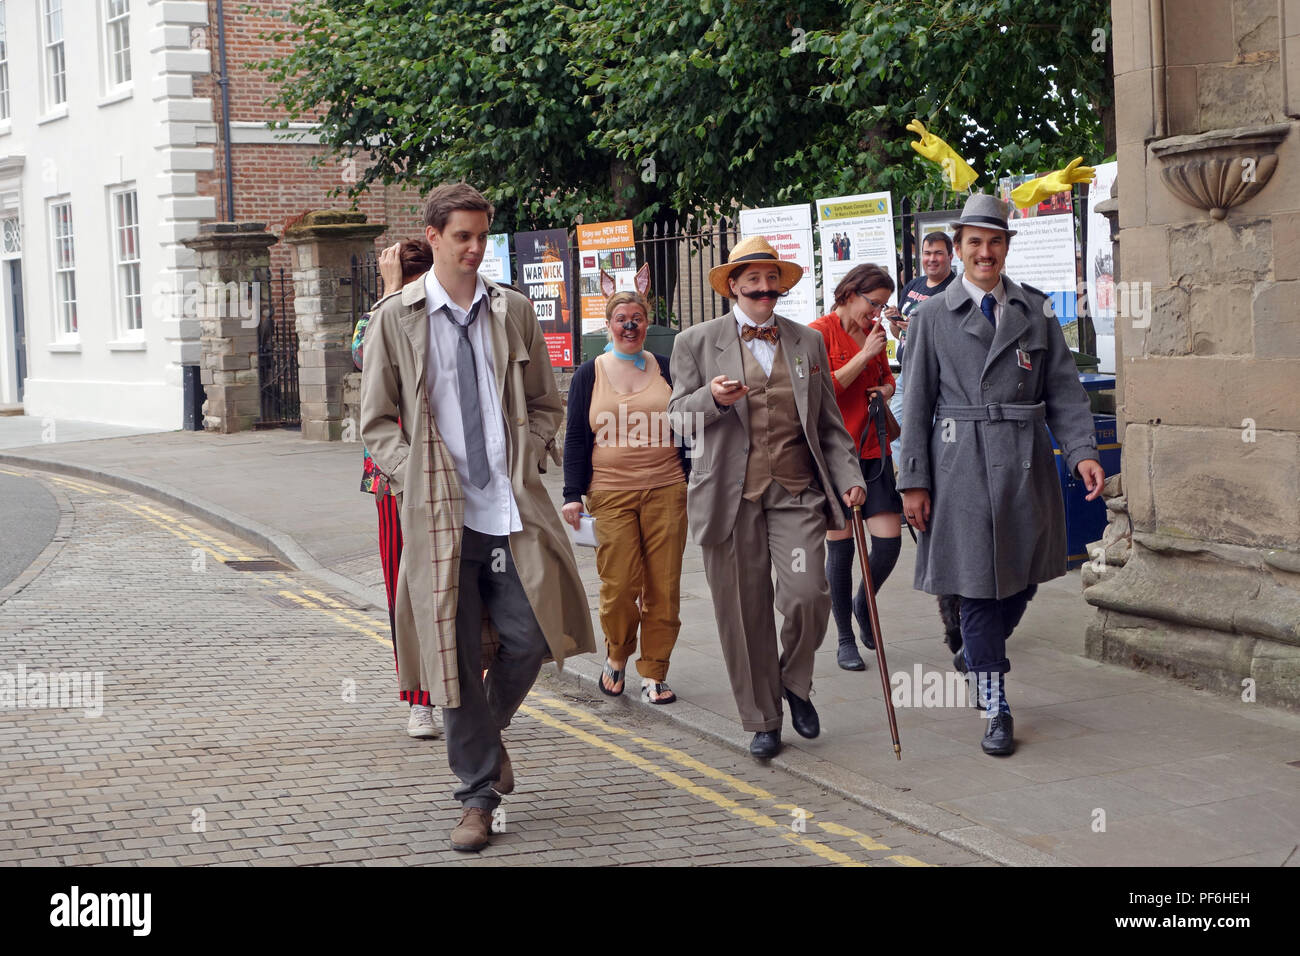 Group of wannabe detectives all wearing fancy dress on a virtual Murder Mystery daytime event on the streets of Warwick England - Stock Image